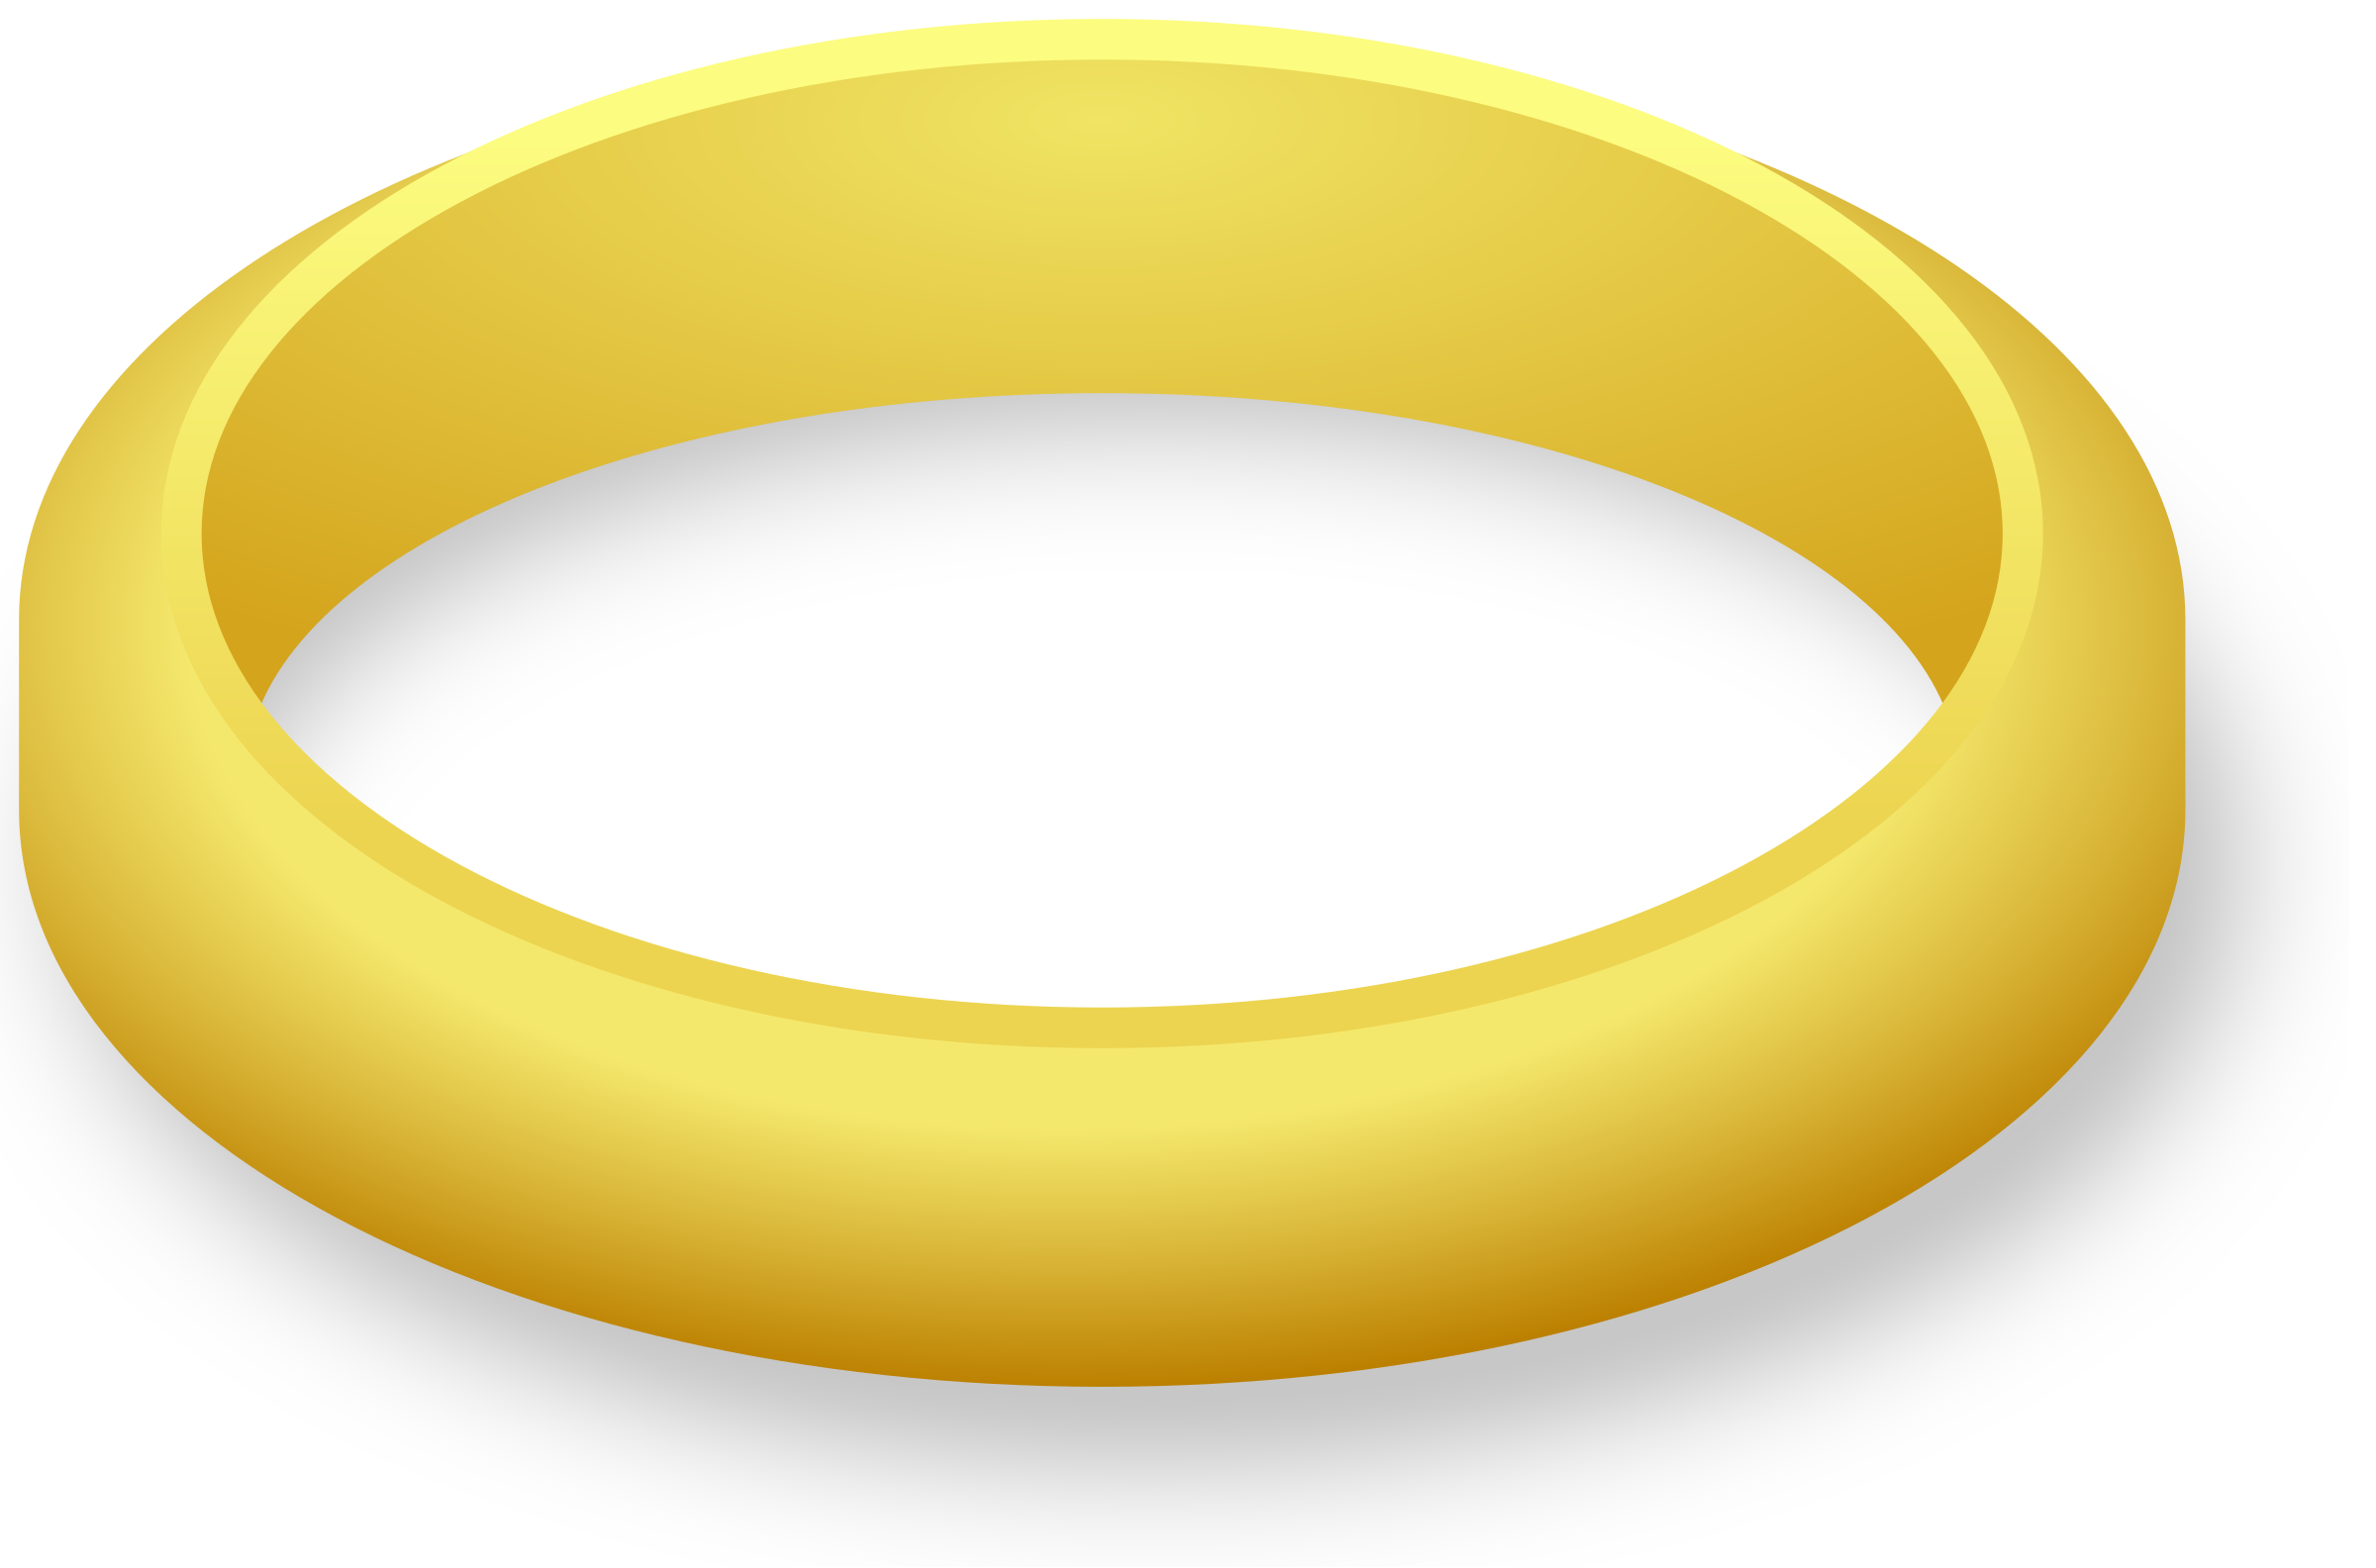 Clipart wedding gold. Ring big image png